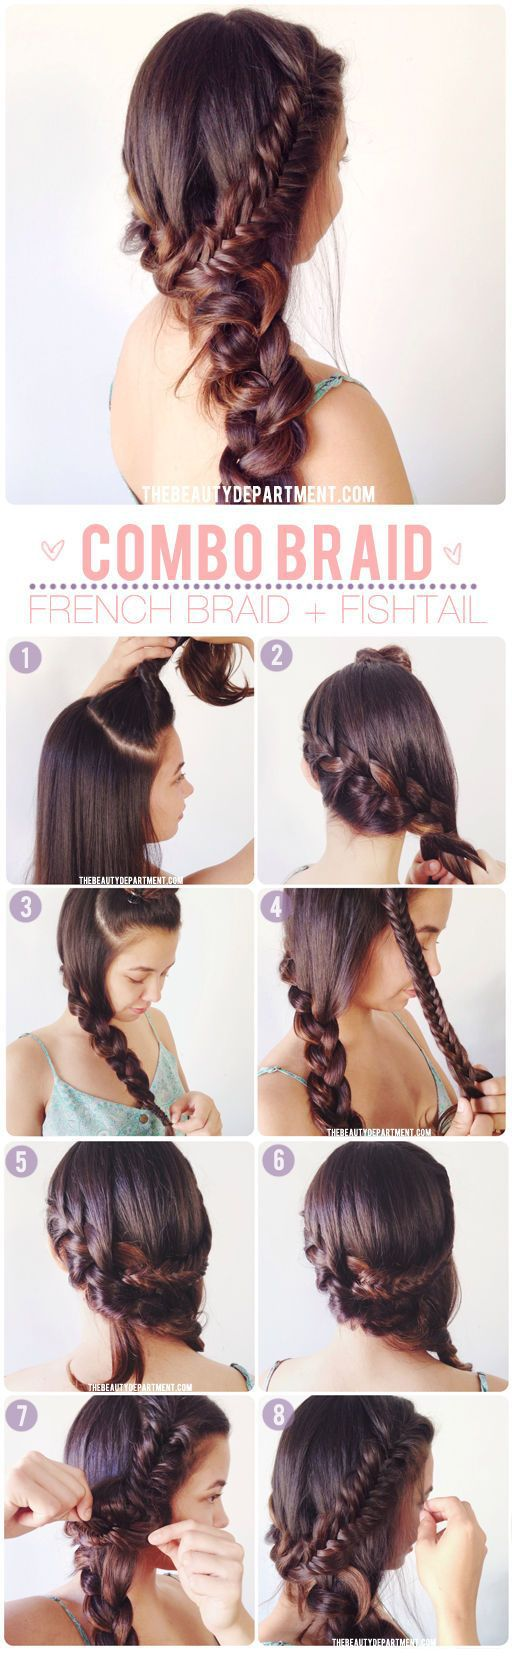 easy noheat summer hairstyles for girls with long hair summer